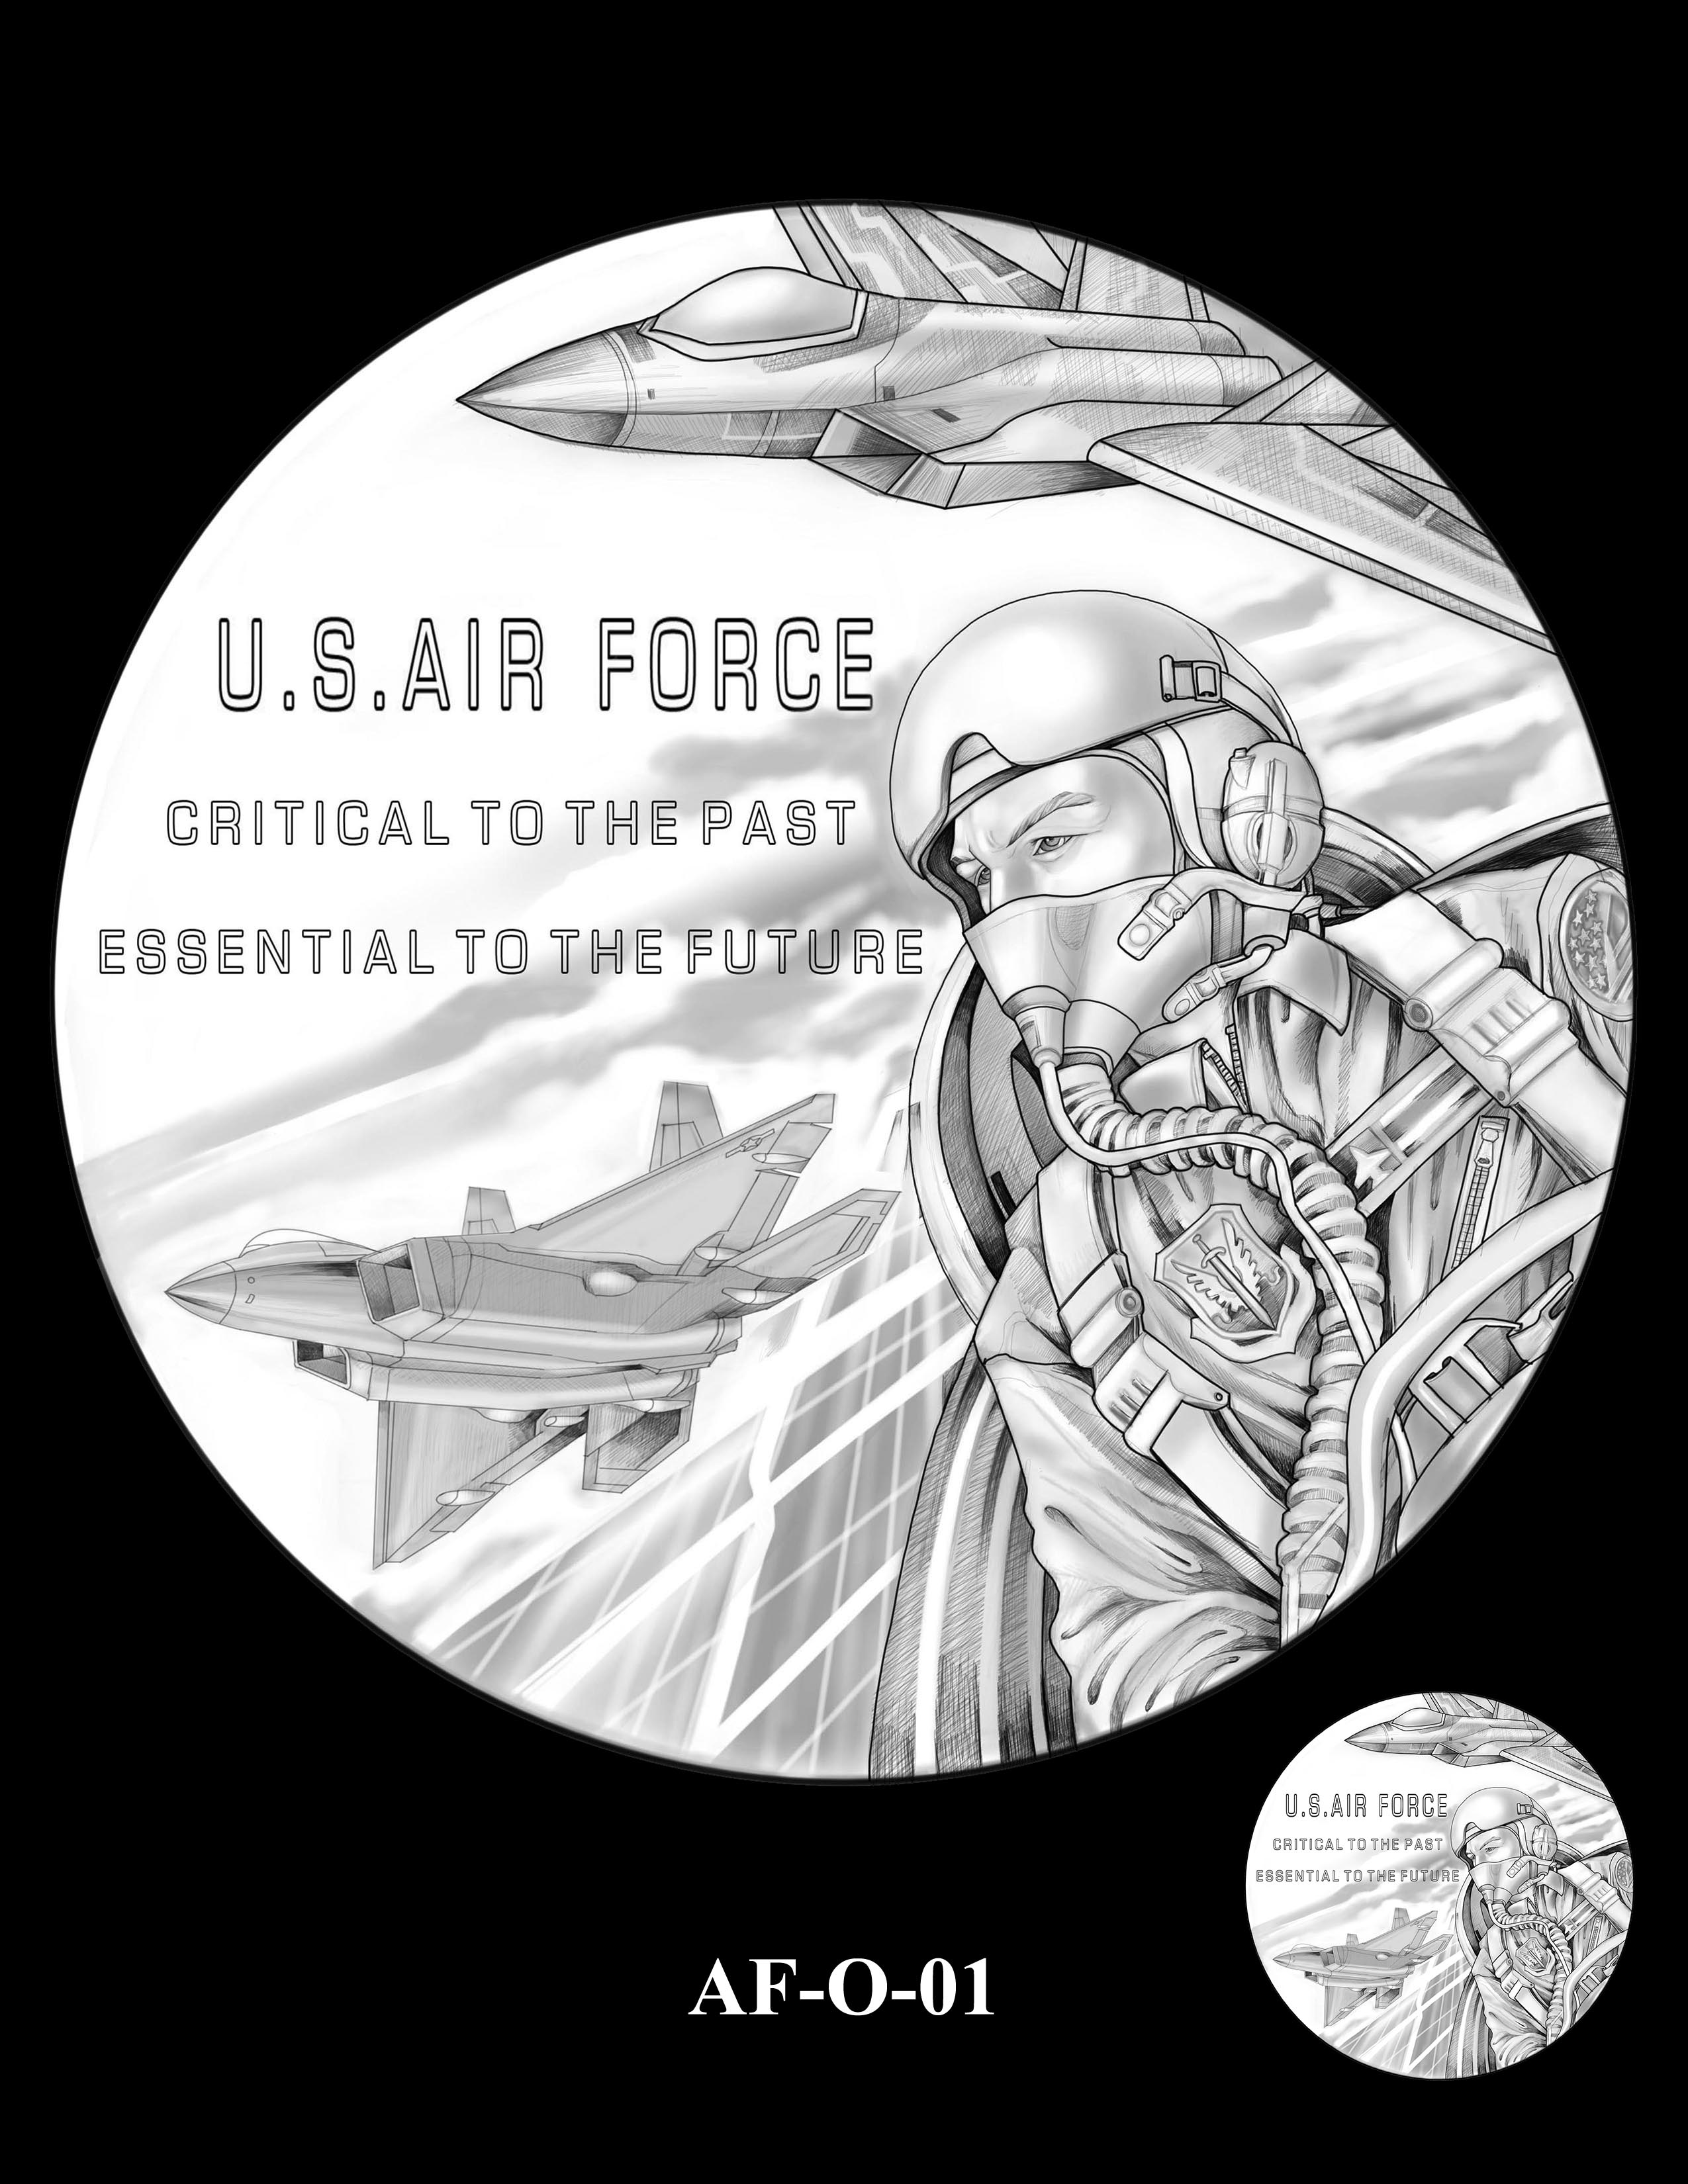 AF-O-01 -- Armed Forces Medal - Air Force